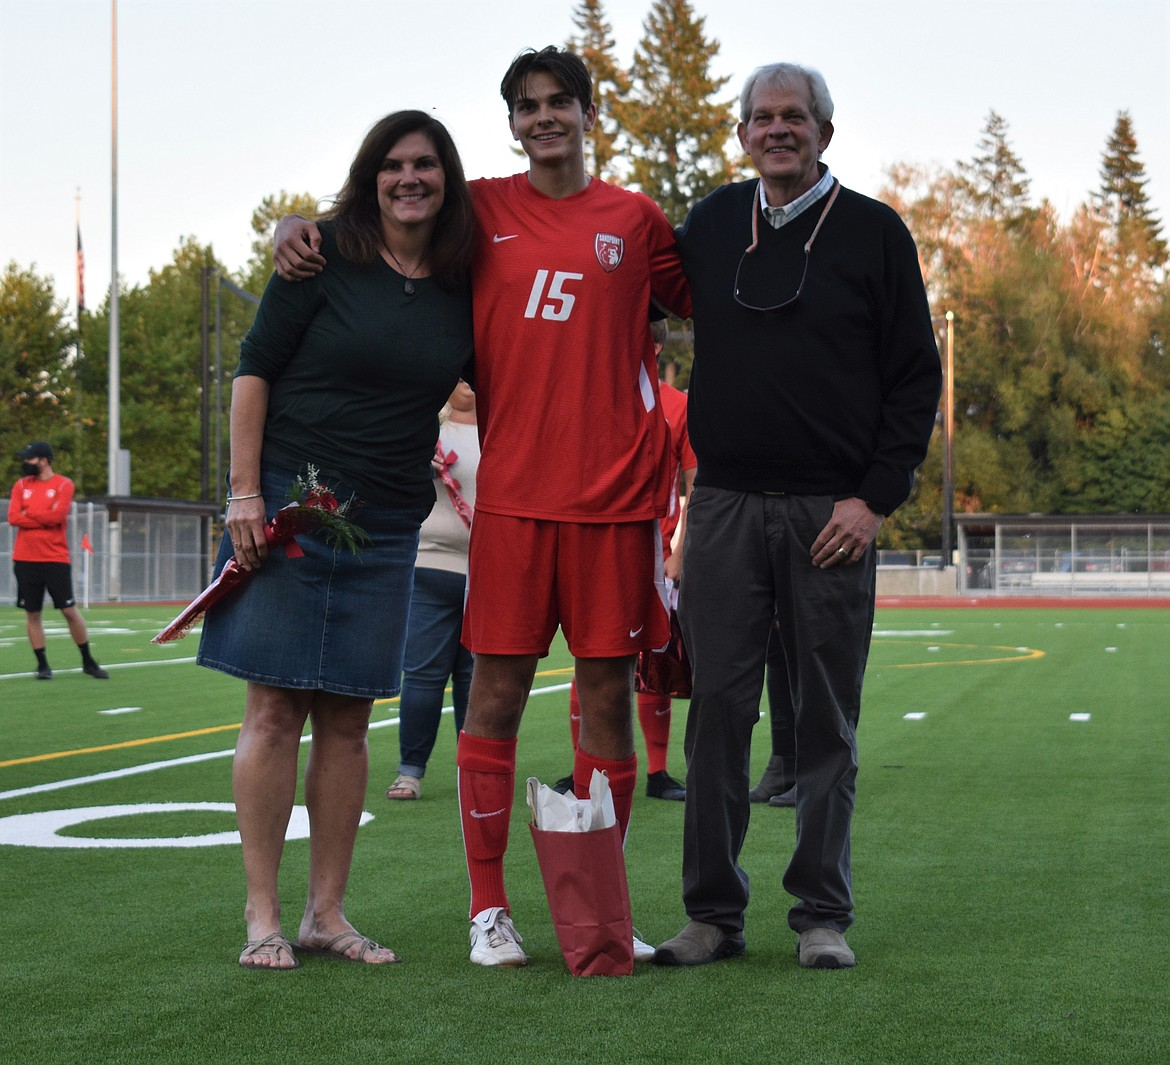 Chris Koch poses for a photo with his family on Senior Night.